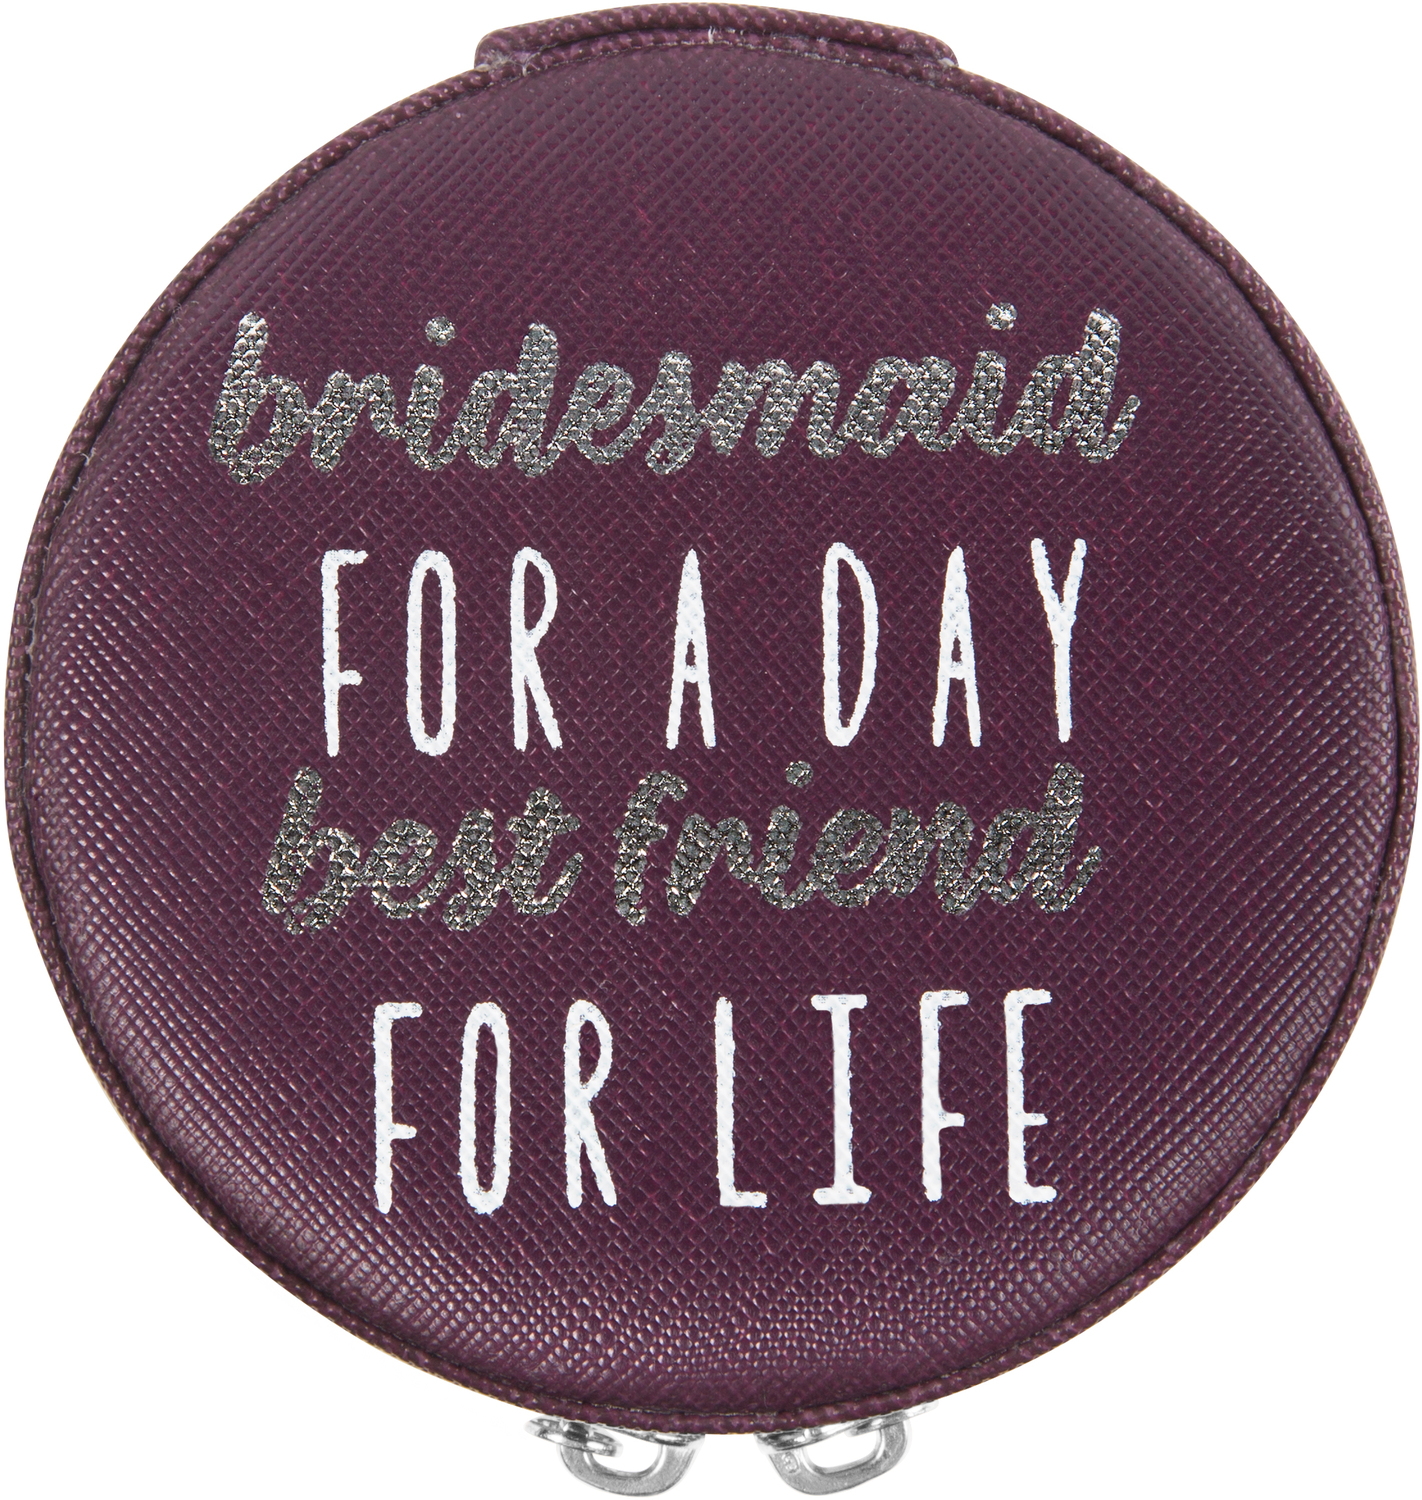 "Bridesmaid by Best Kept Trinkets - Bridesmaid - 3.5"" Zippered Jewelry Case"